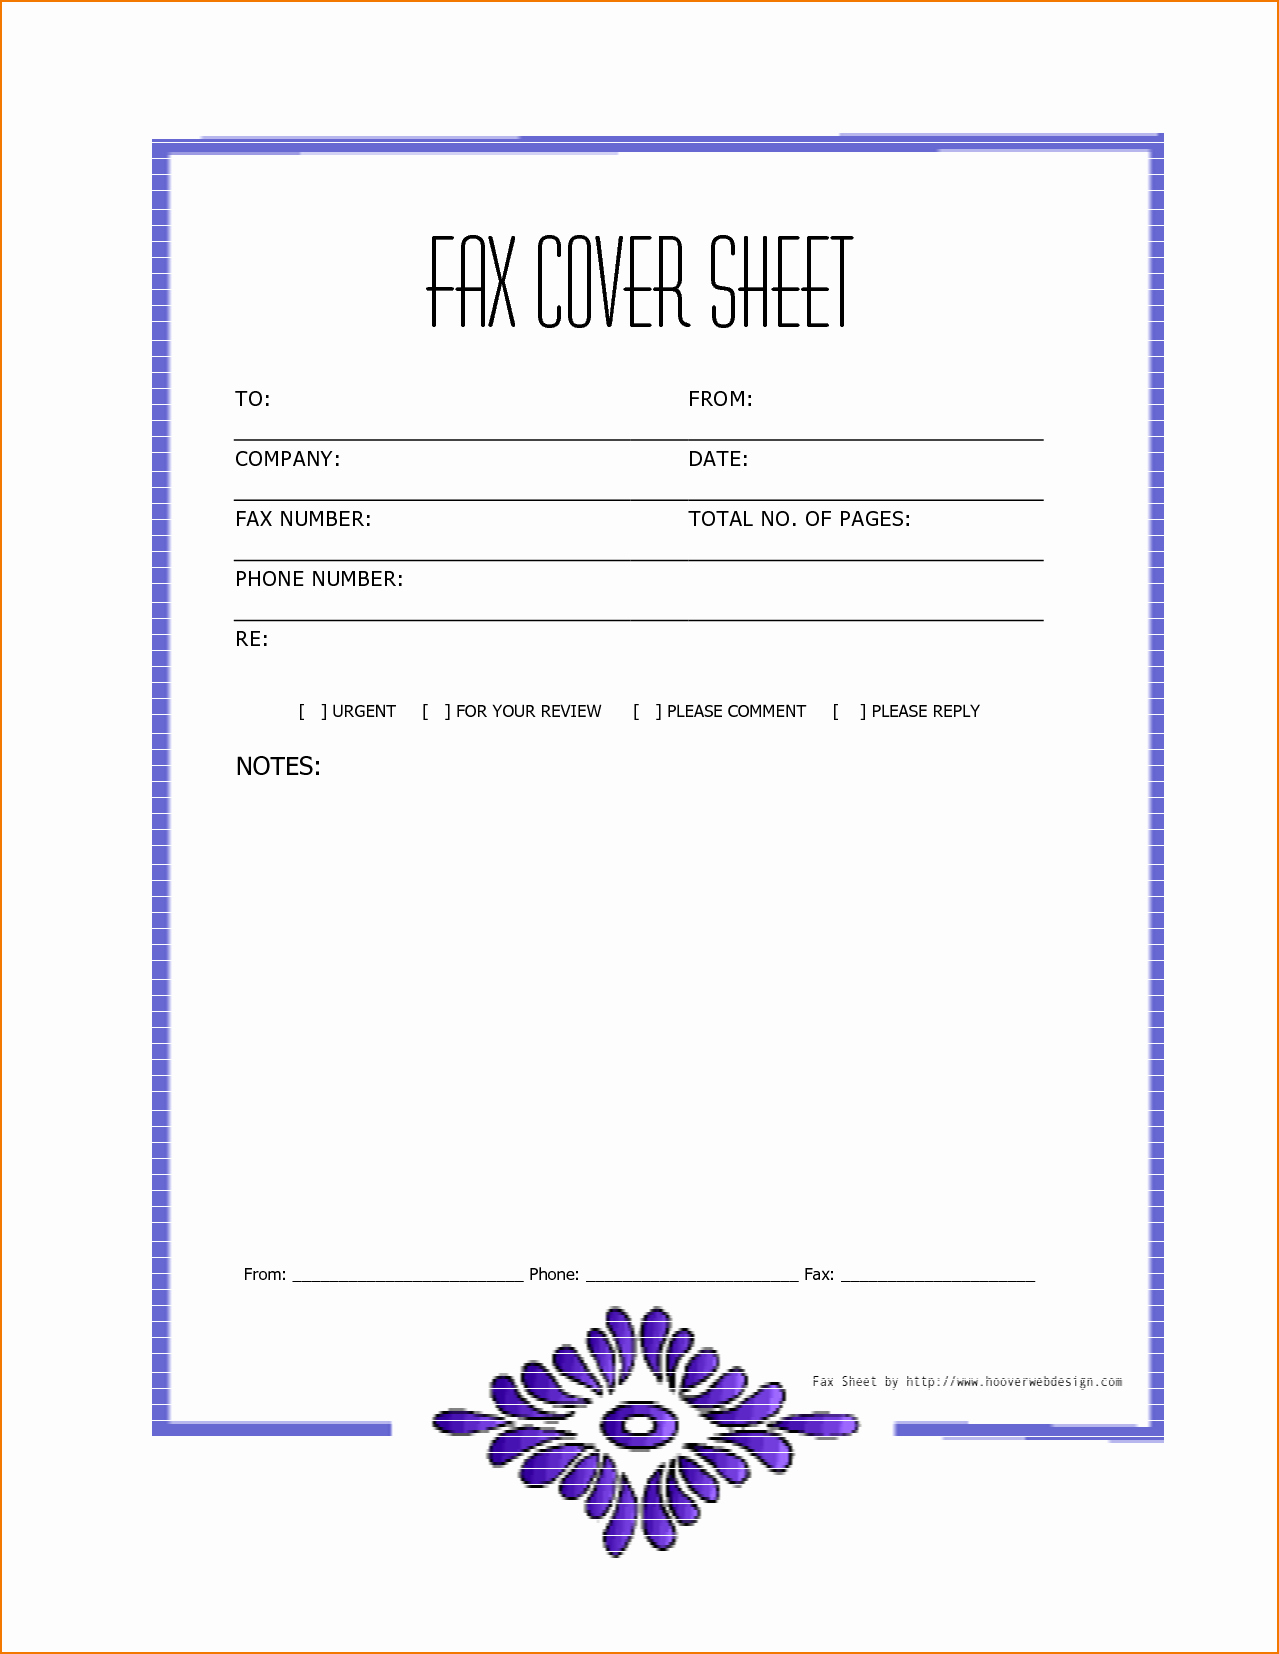 Printable Cover Sheet for Fax Lovely 7 Free Printable Fax Cover Sheet